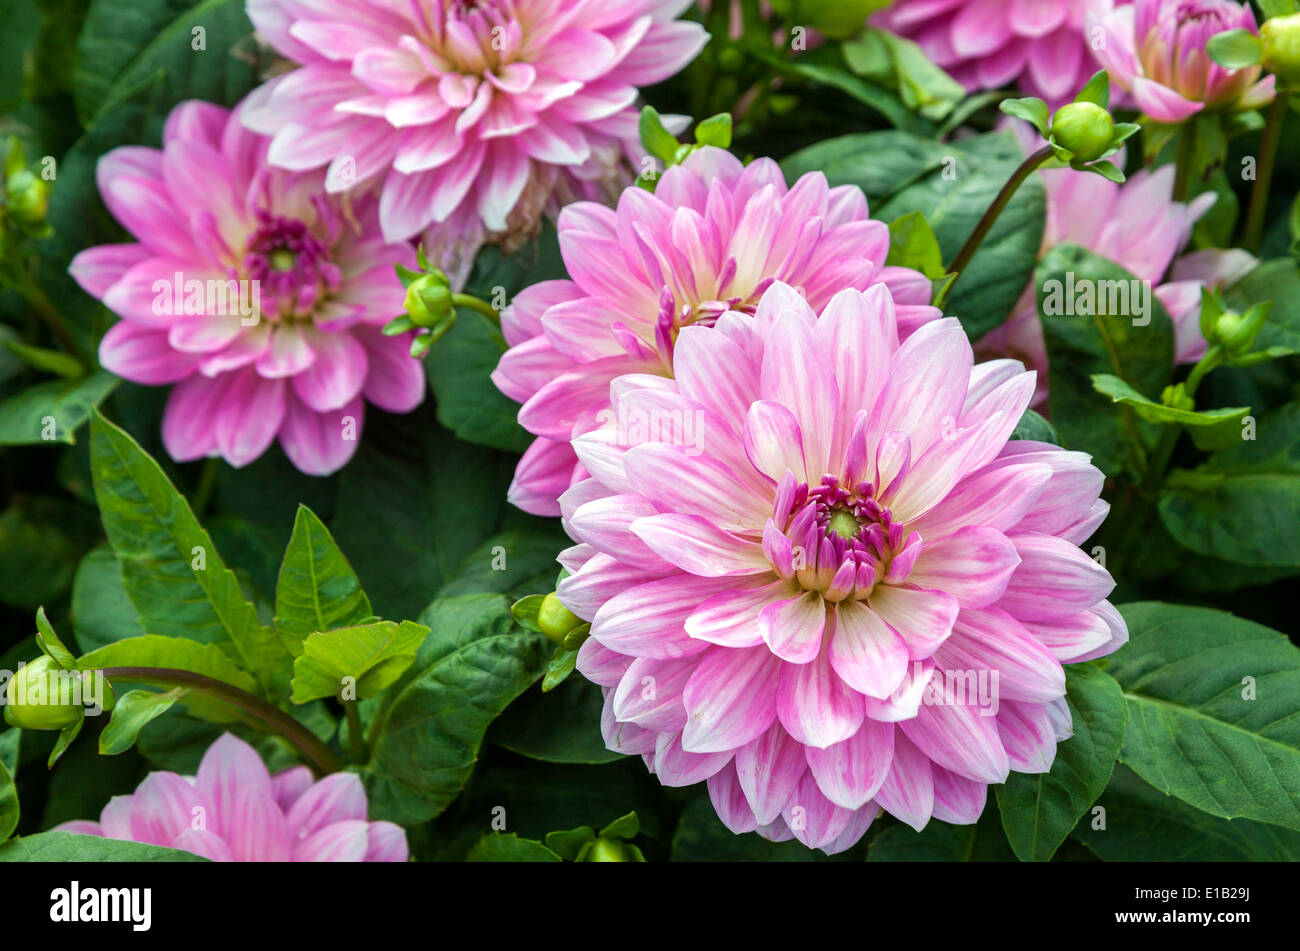 Dahlia leaves stock photos dahlia leaves stock images alamy pink dahlia flowers closeup with green leaves stock image izmirmasajfo